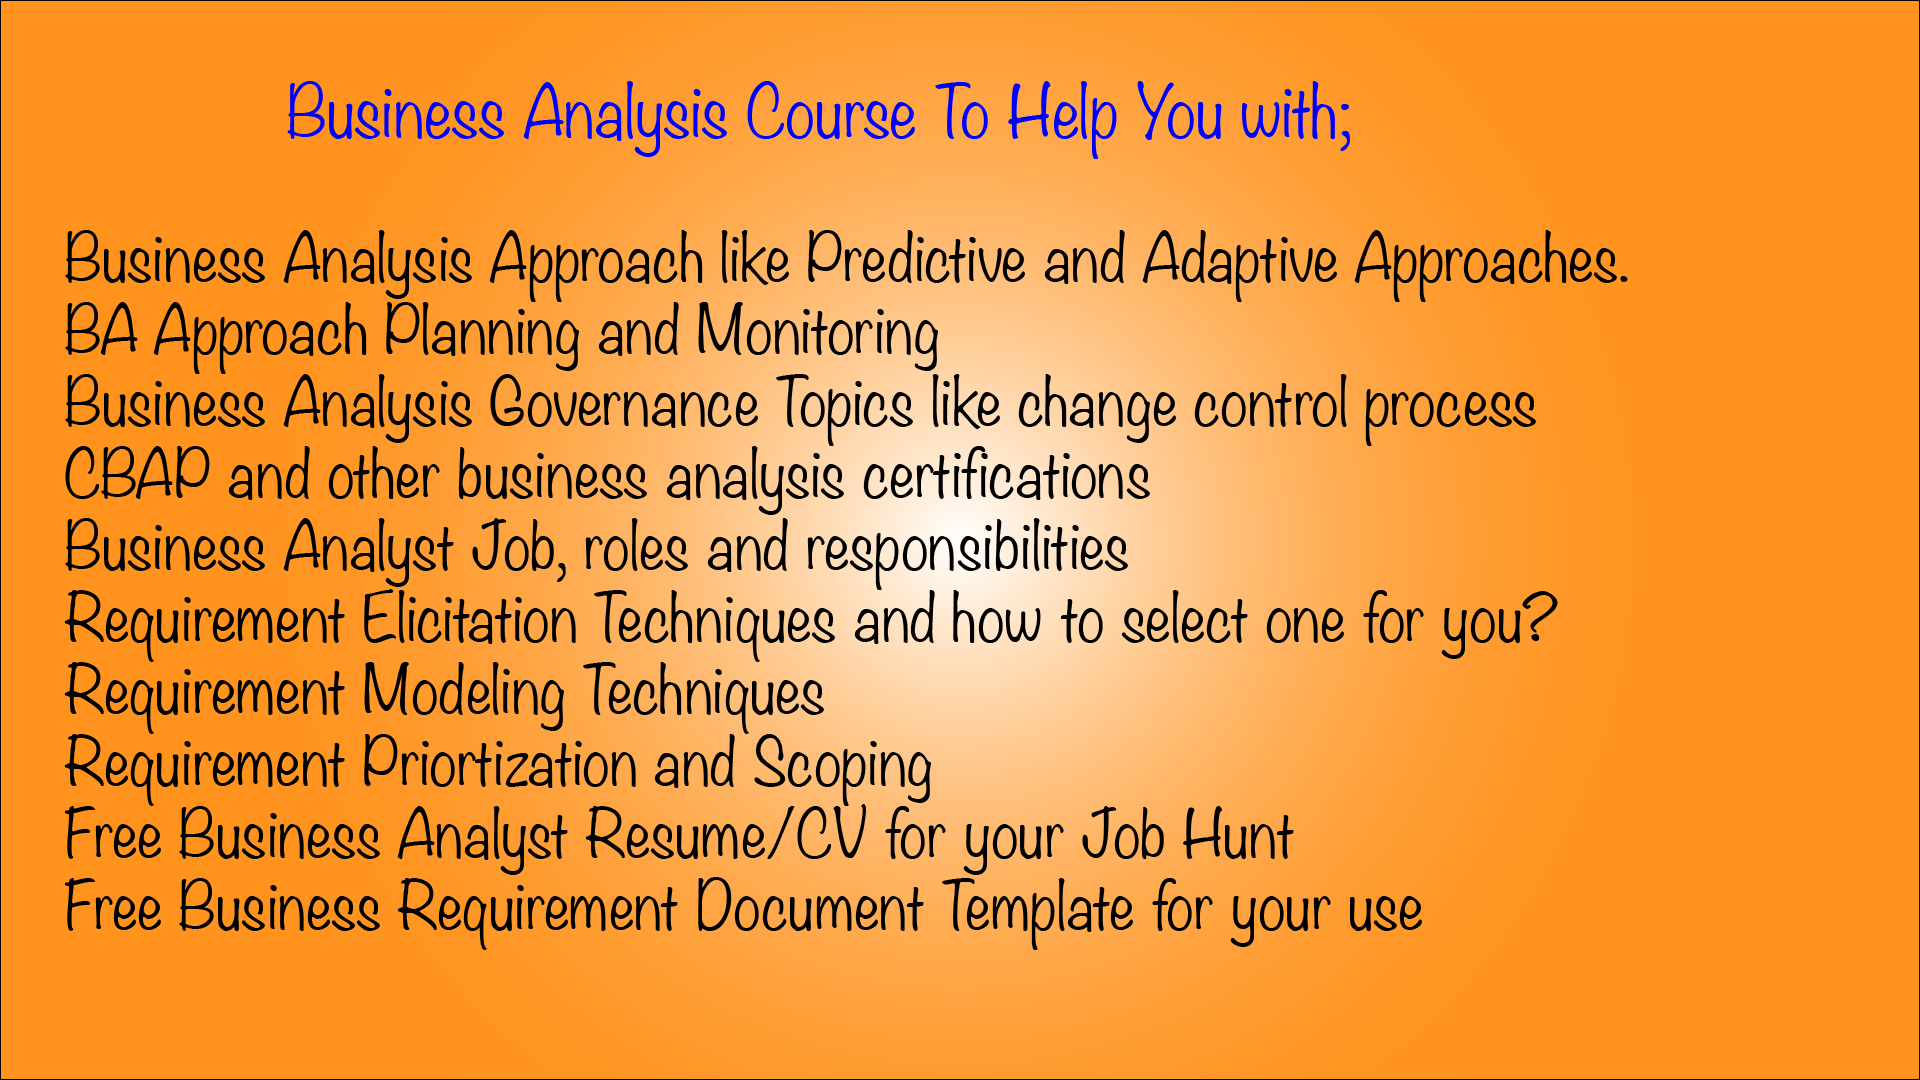 Business Analysis course help